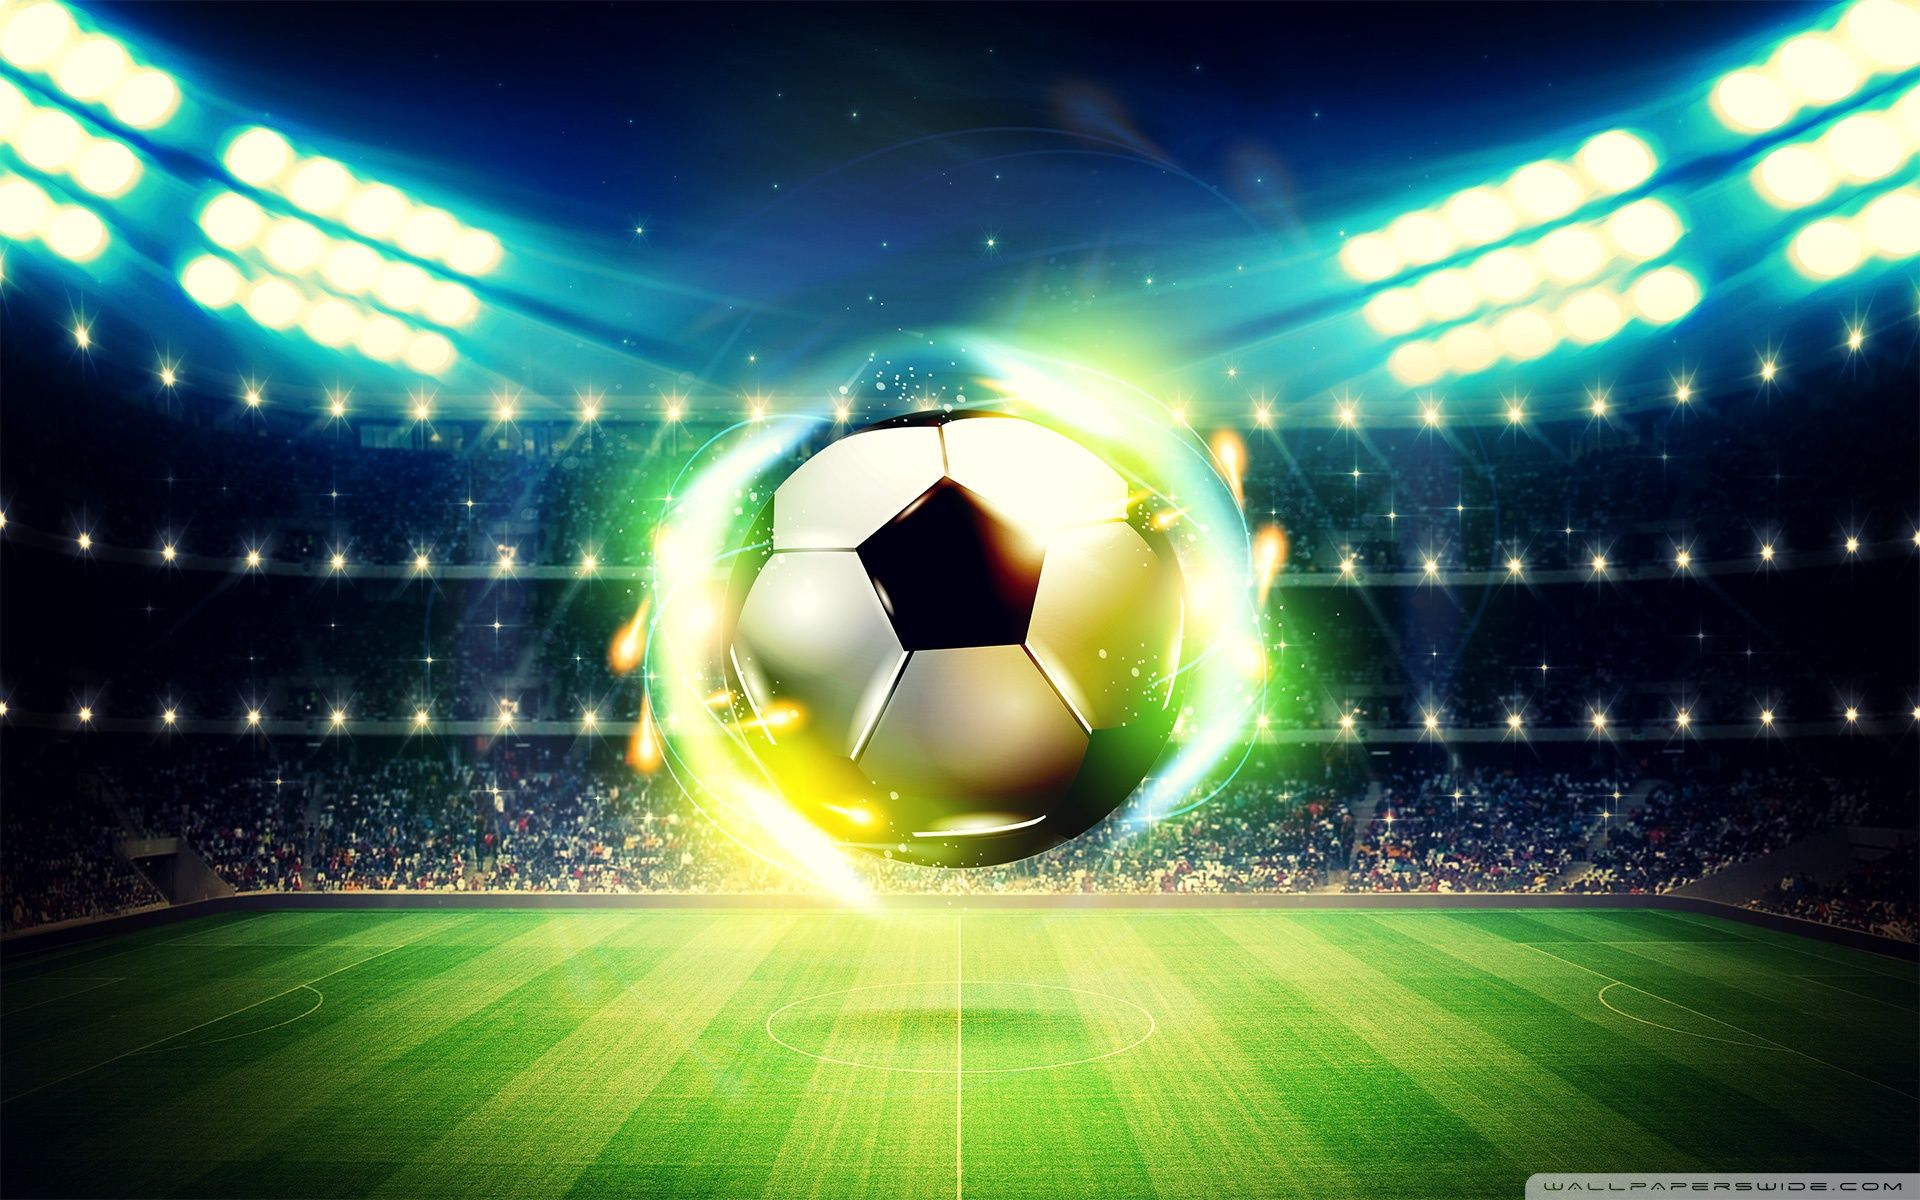 Cool Soccer Wallpapers   HD Wallpapers   Pinterest   Soccer pictures     Cool Soccer Wallpapers